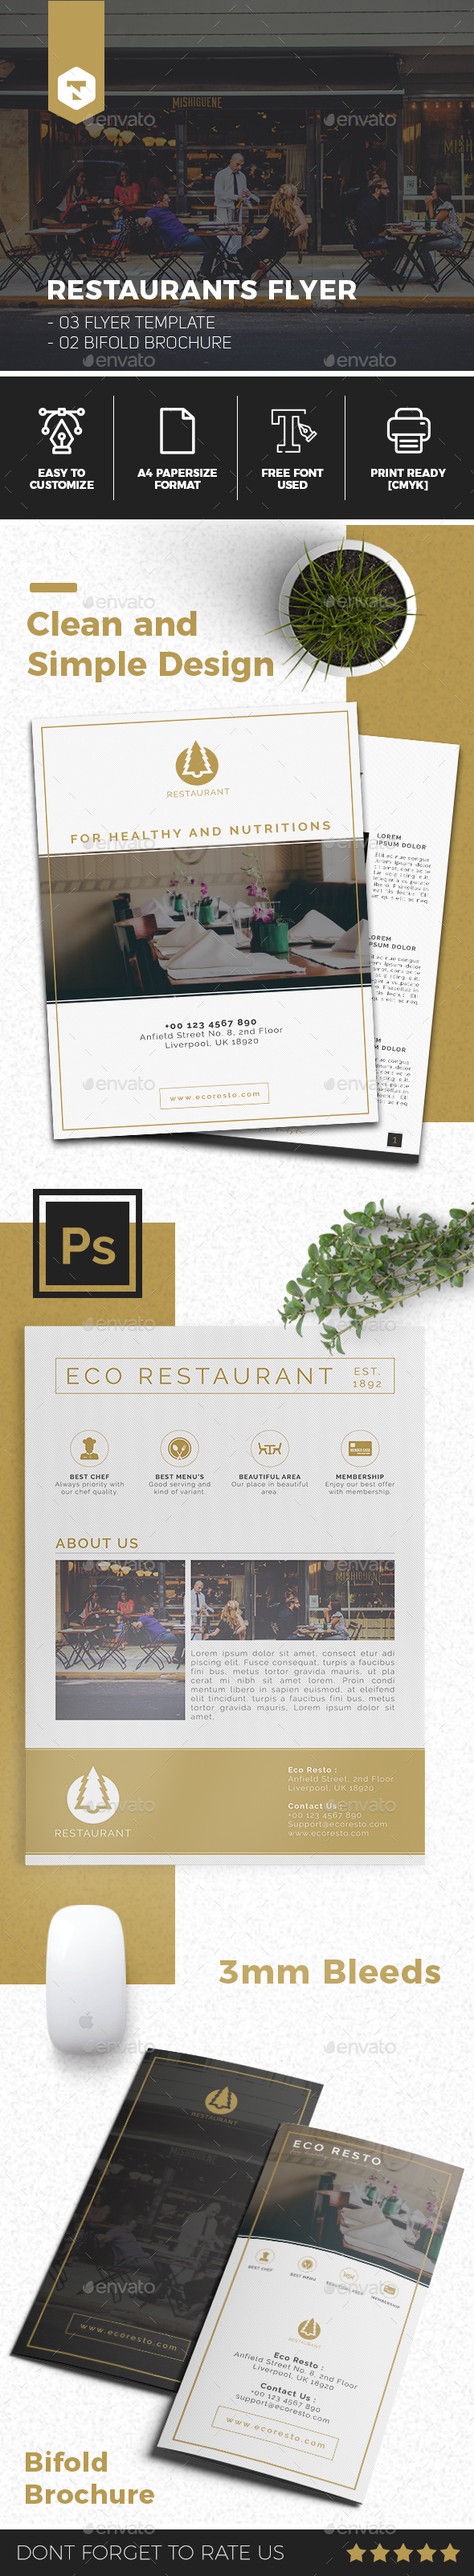 Restaurant Flyer Template - Flyers Print Templates